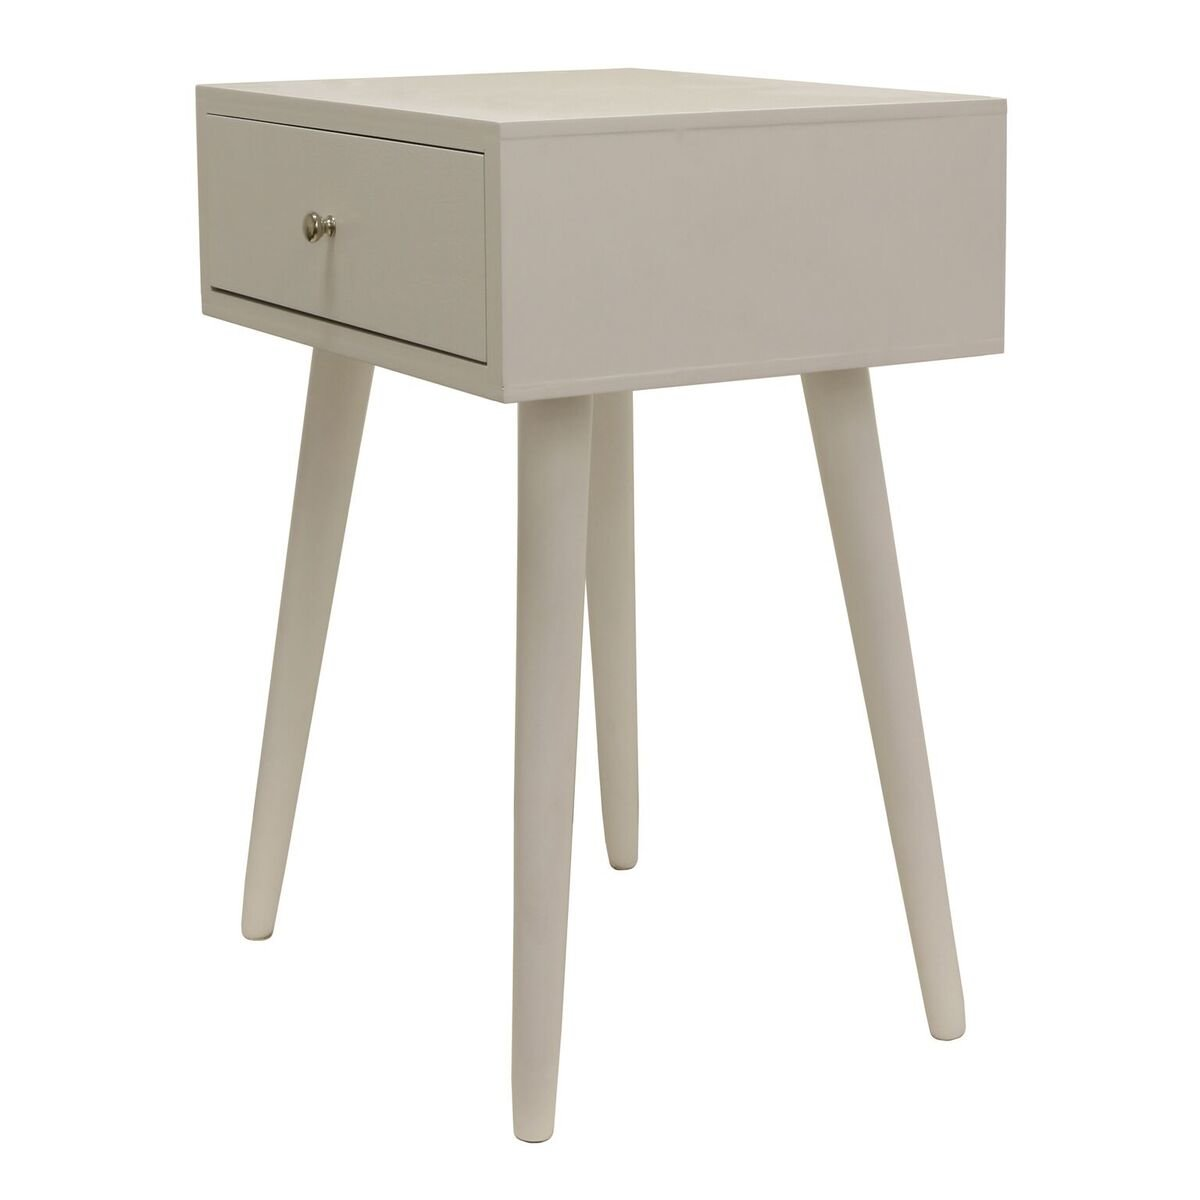 small white accent table grant end with storage patchen quickview dark blue ashley furniture mattress turquoise chair target coffee wheels dorm room necessities round vinyl